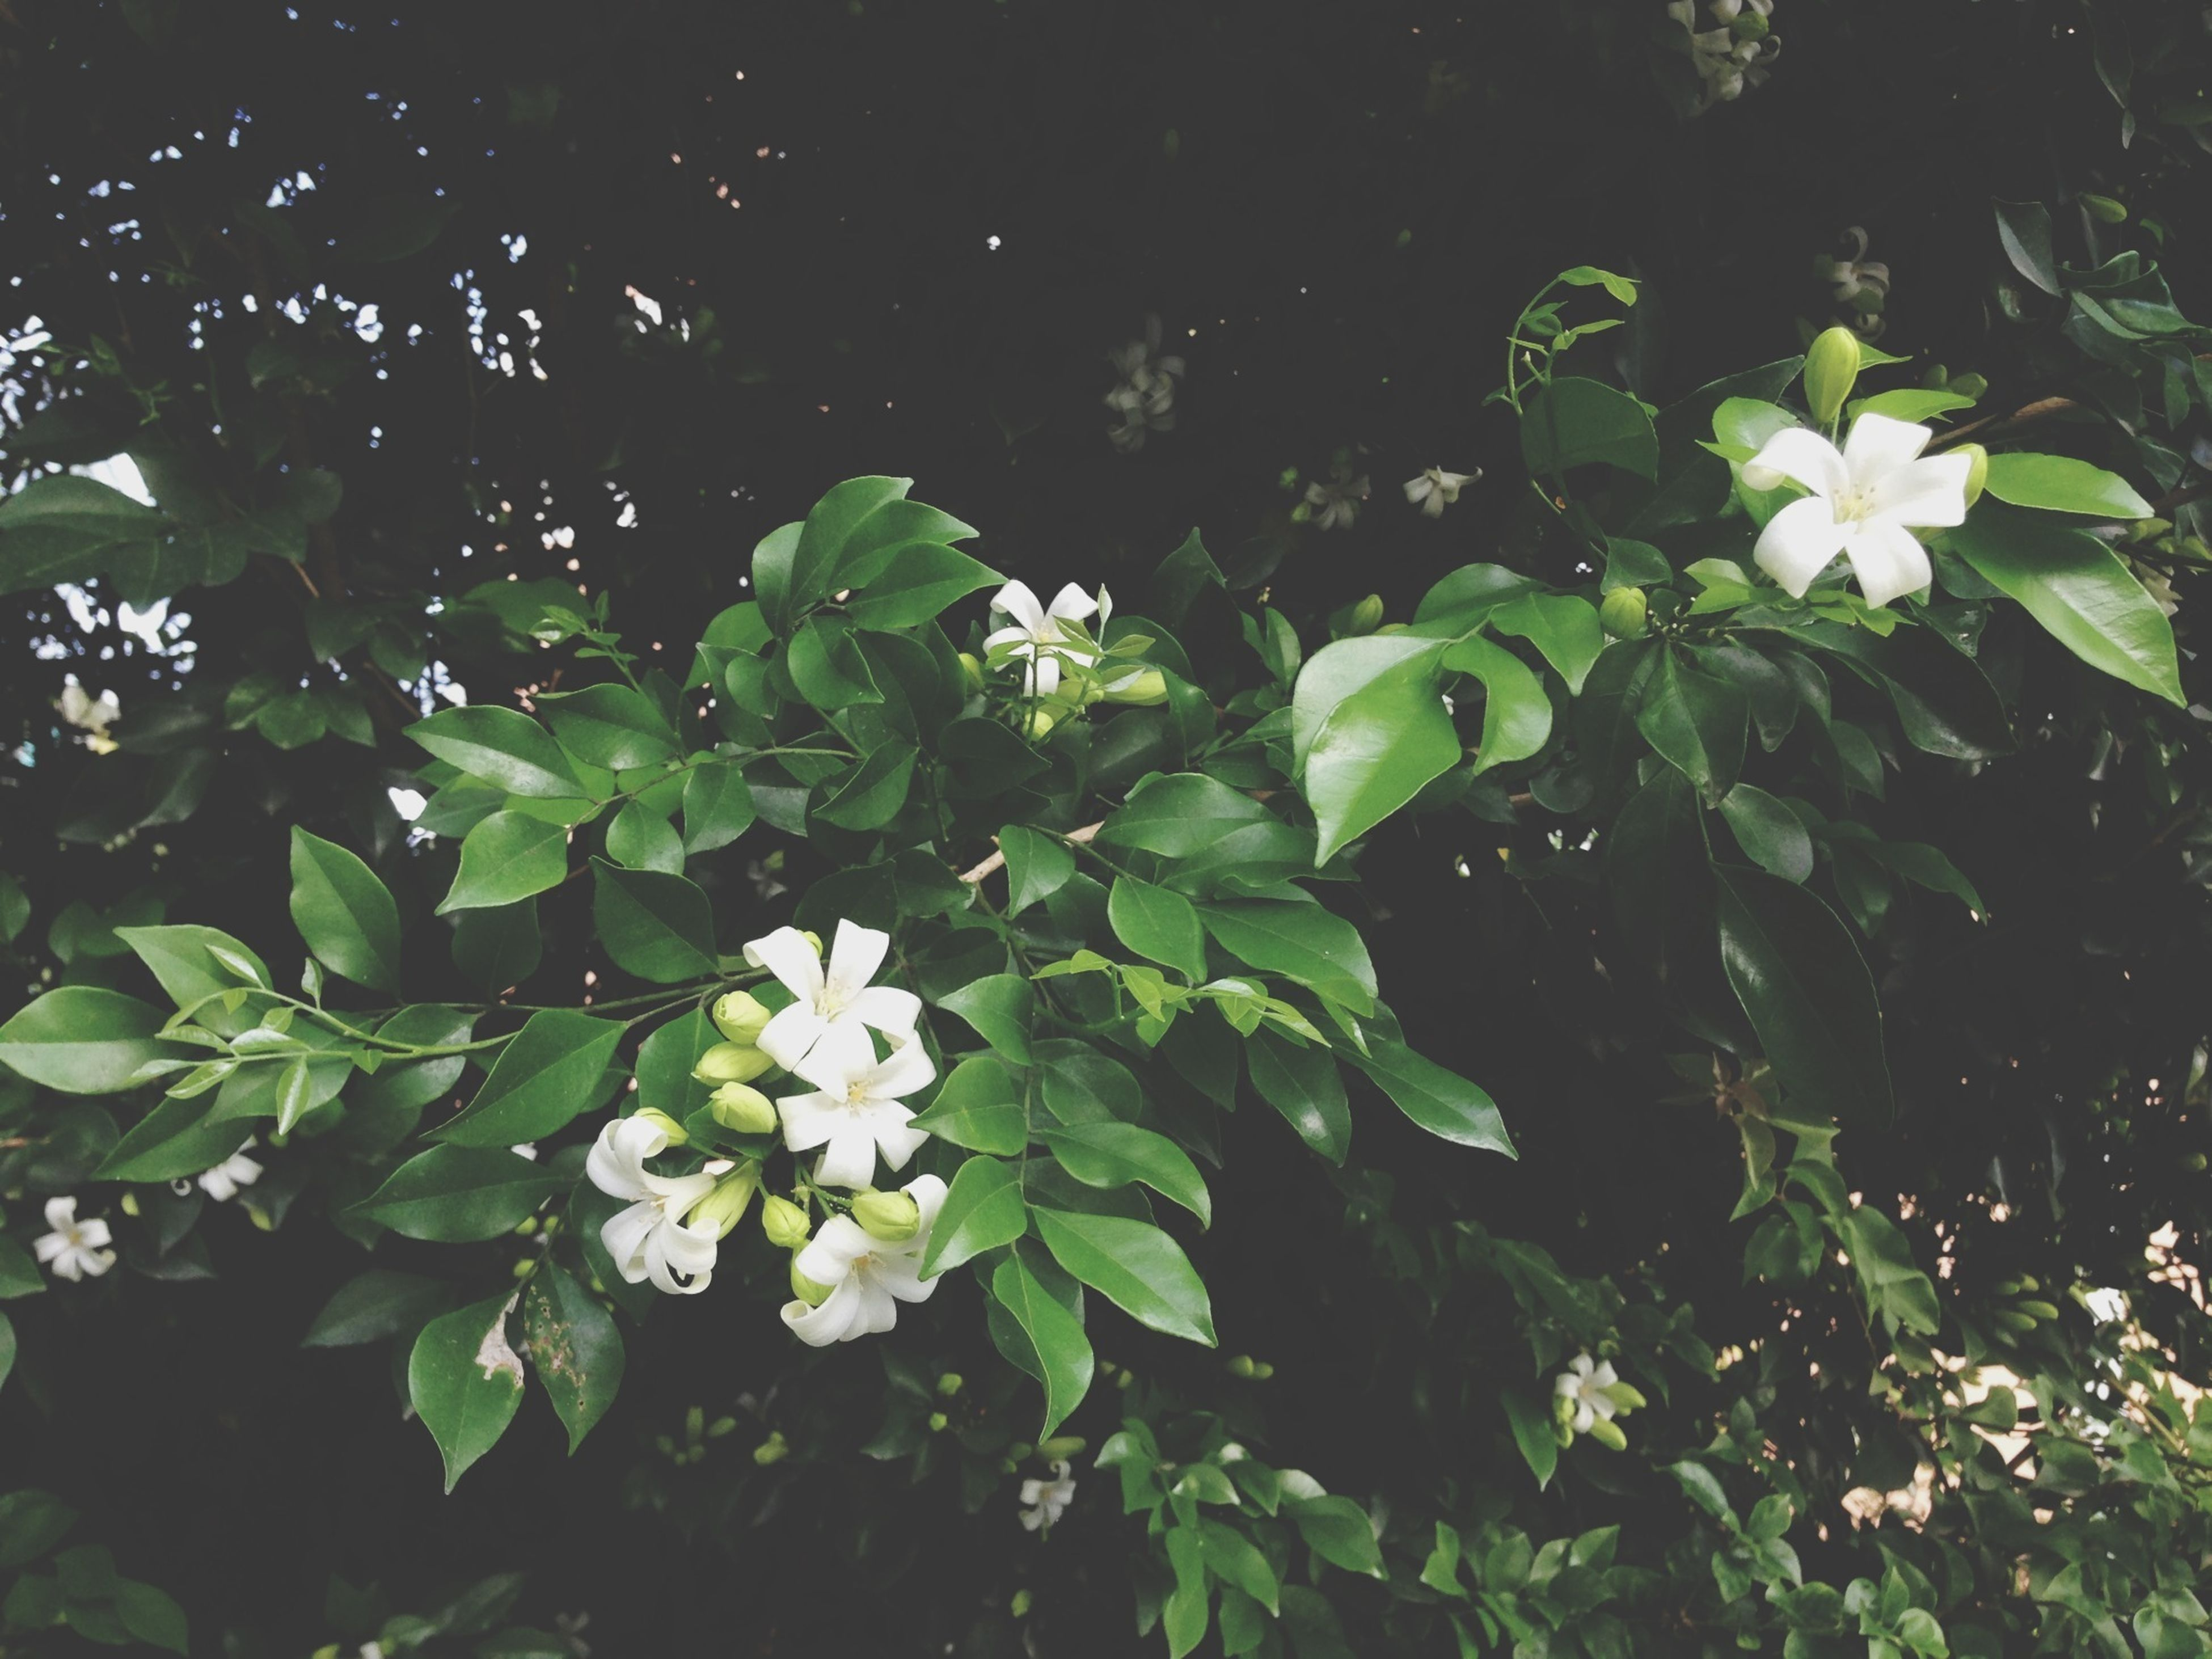 flower, growth, freshness, fragility, leaf, beauty in nature, plant, white color, petal, nature, blooming, green color, flower head, high angle view, in bloom, close-up, outdoors, no people, day, blossom